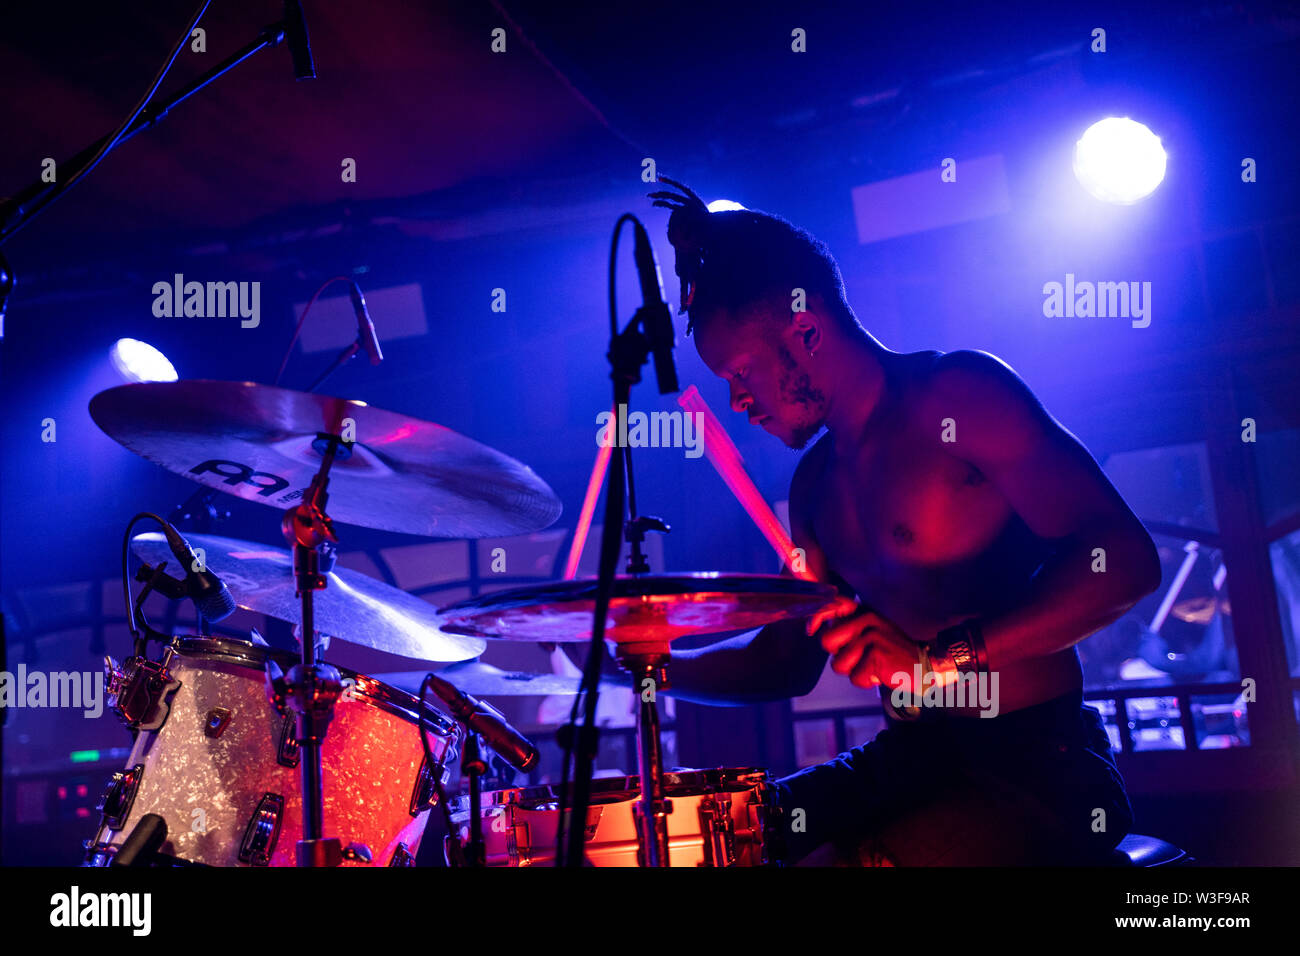 Bergen, Norway - June 15th, 2019. The British band Black Midi performs a live concert during the Norwegian music festival Bergenfest 2019 in Bergen. Here drummer Morgan Simpson is seen live on stage. (Photo credit: Gonzales Photo - Jarle H. Moe). - Stock Image